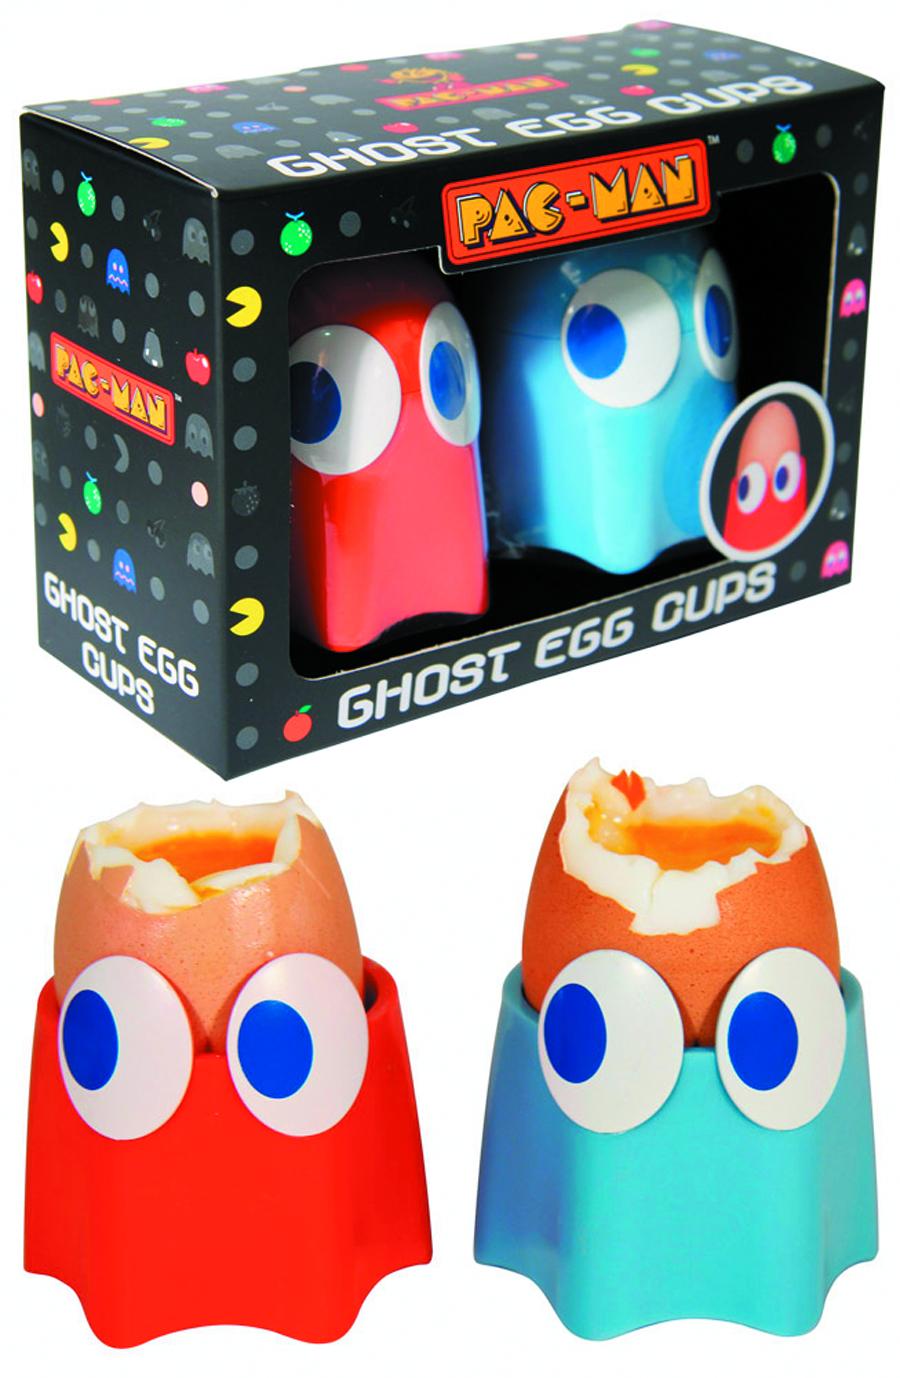 PAC-MAN GHOST EGG CUPS 2 PACK